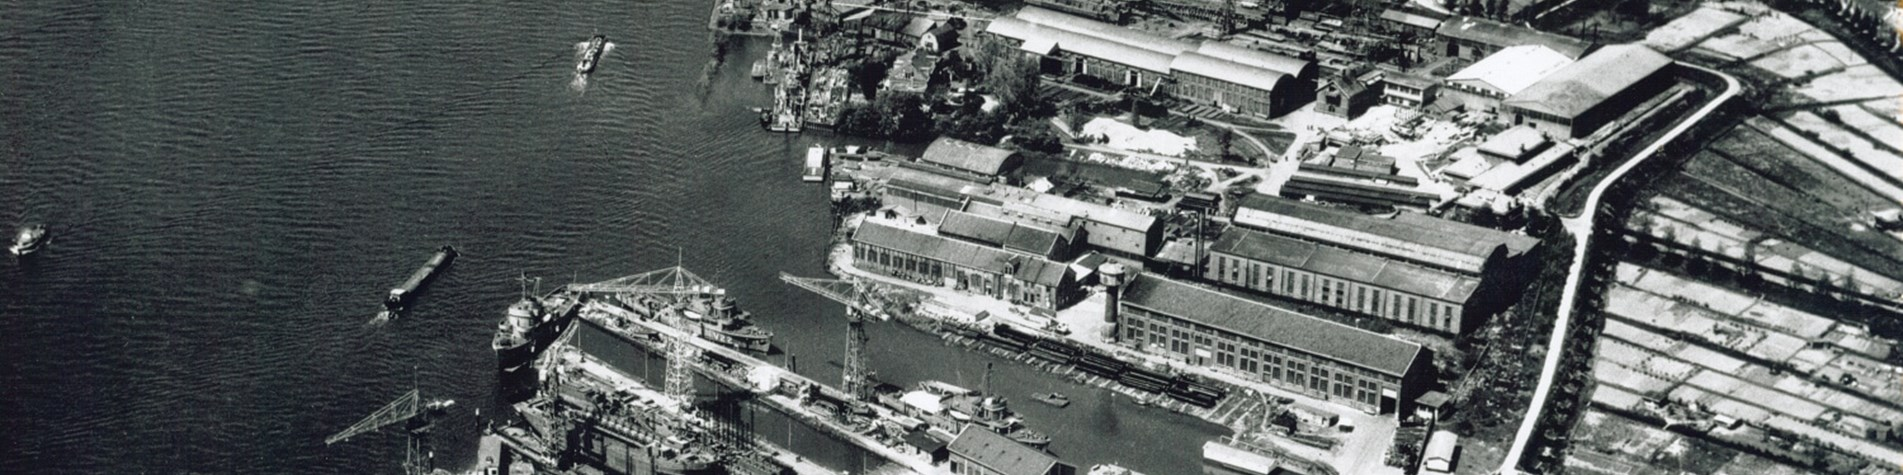 Old shipyard in Lagersmit history